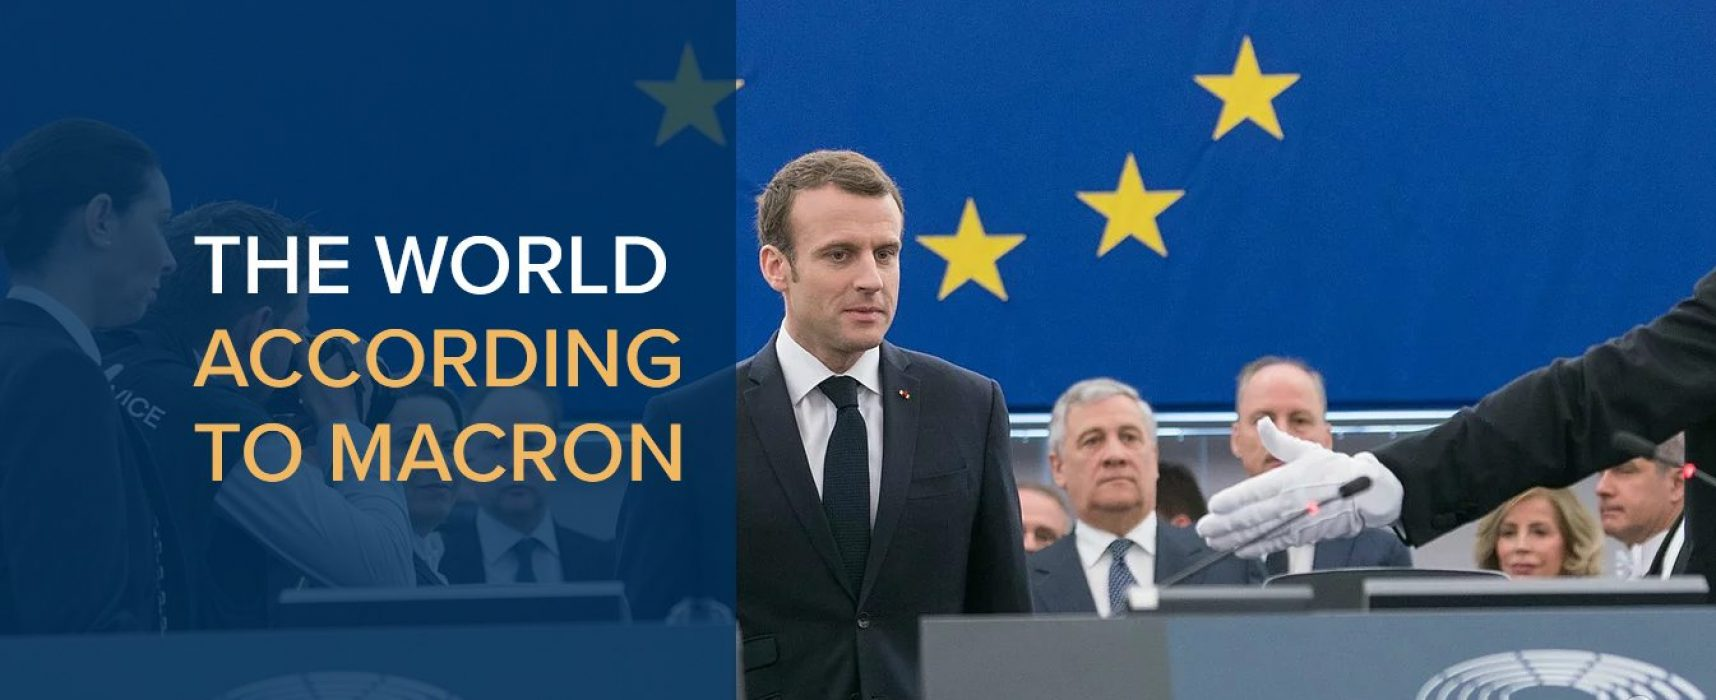 The world according to Macron